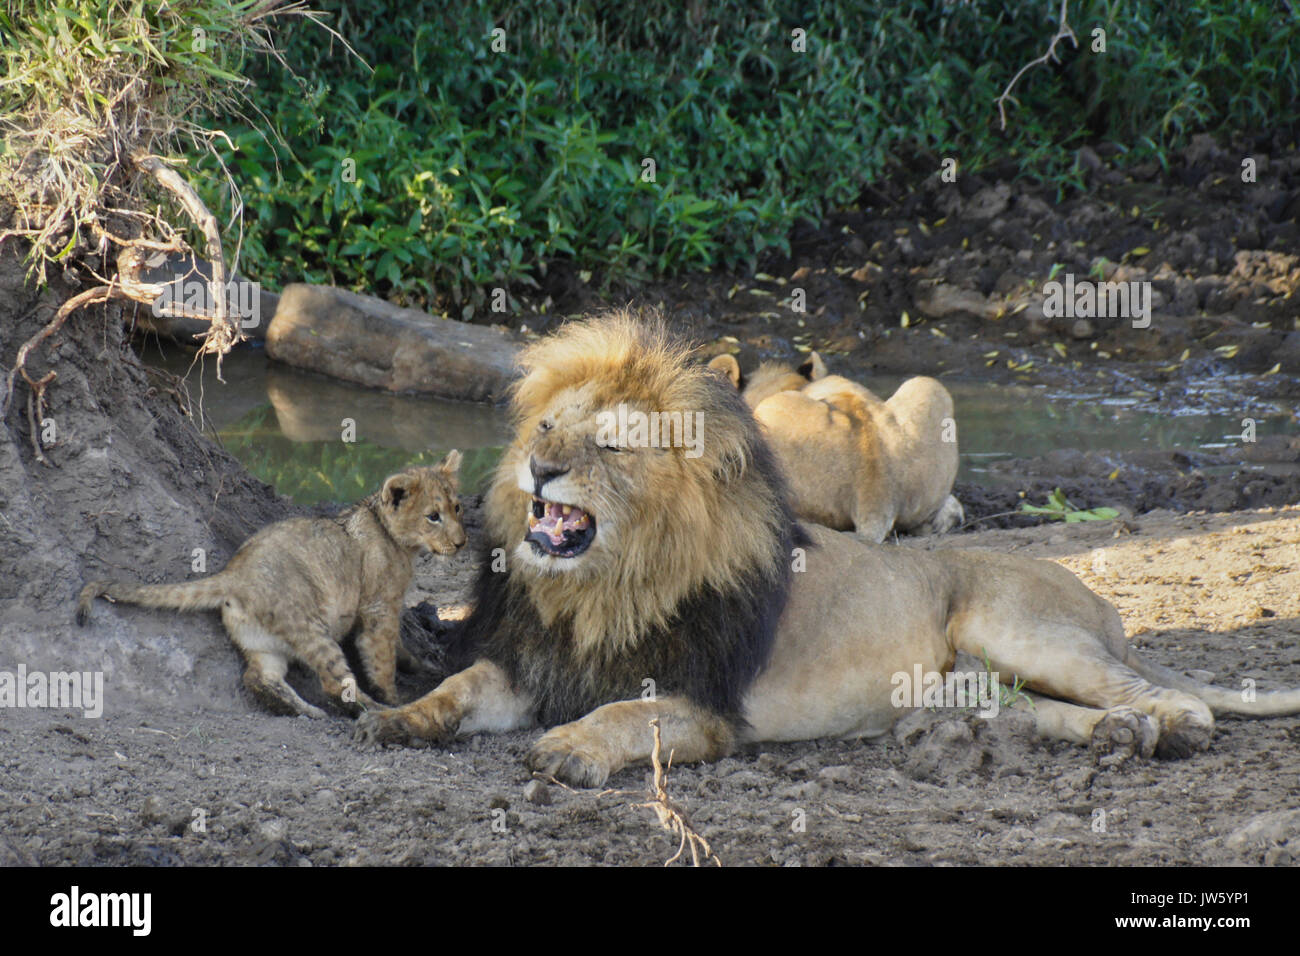 Male lion annoyed by his cub while lioness drinks from pool in background, Masai Mara Game Reserve, Kenya - Stock Image